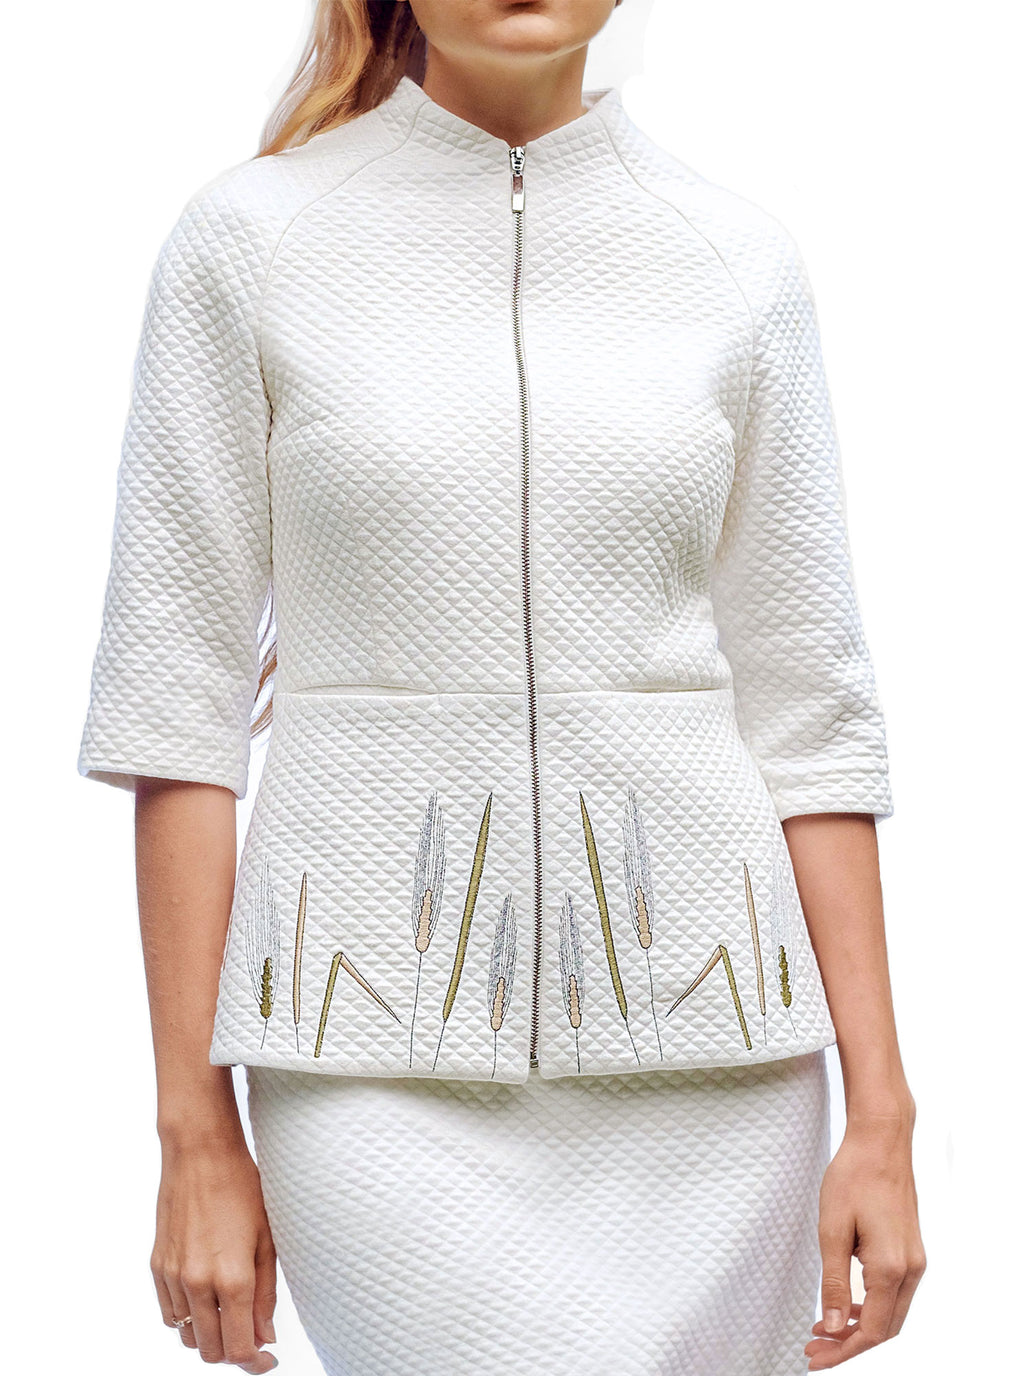 TRITIKALE White Organic Cotton Embroidered Jacket